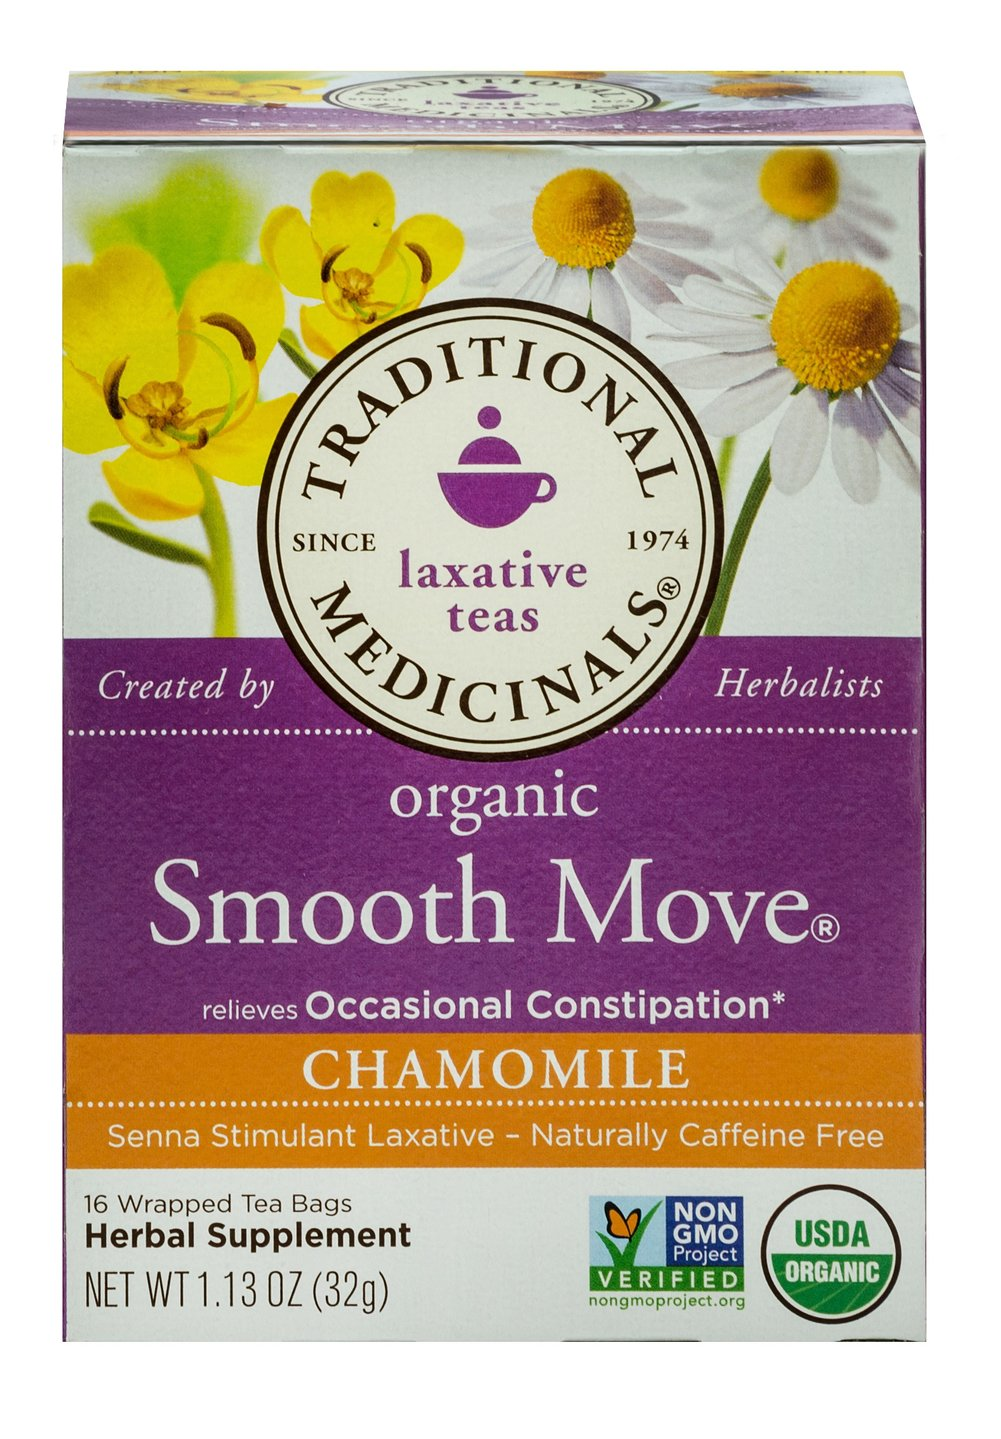 Organic Smooth Move® Chamomile Tea <p><strong>From the Manufacturer's Label:</strong></p><p>Organic Smooth Move Chamomiles' personality is confident and empowering, a relief to be around. Taste is pleasantly aromatic and bittersweet with a hint of apple.</p><p>Best taken at bedtime. Sip and sleep easy knowing you'll be right as rain in the morning.<br /></p><p><strong></strong></p> 16 Tea Bags  $9.99